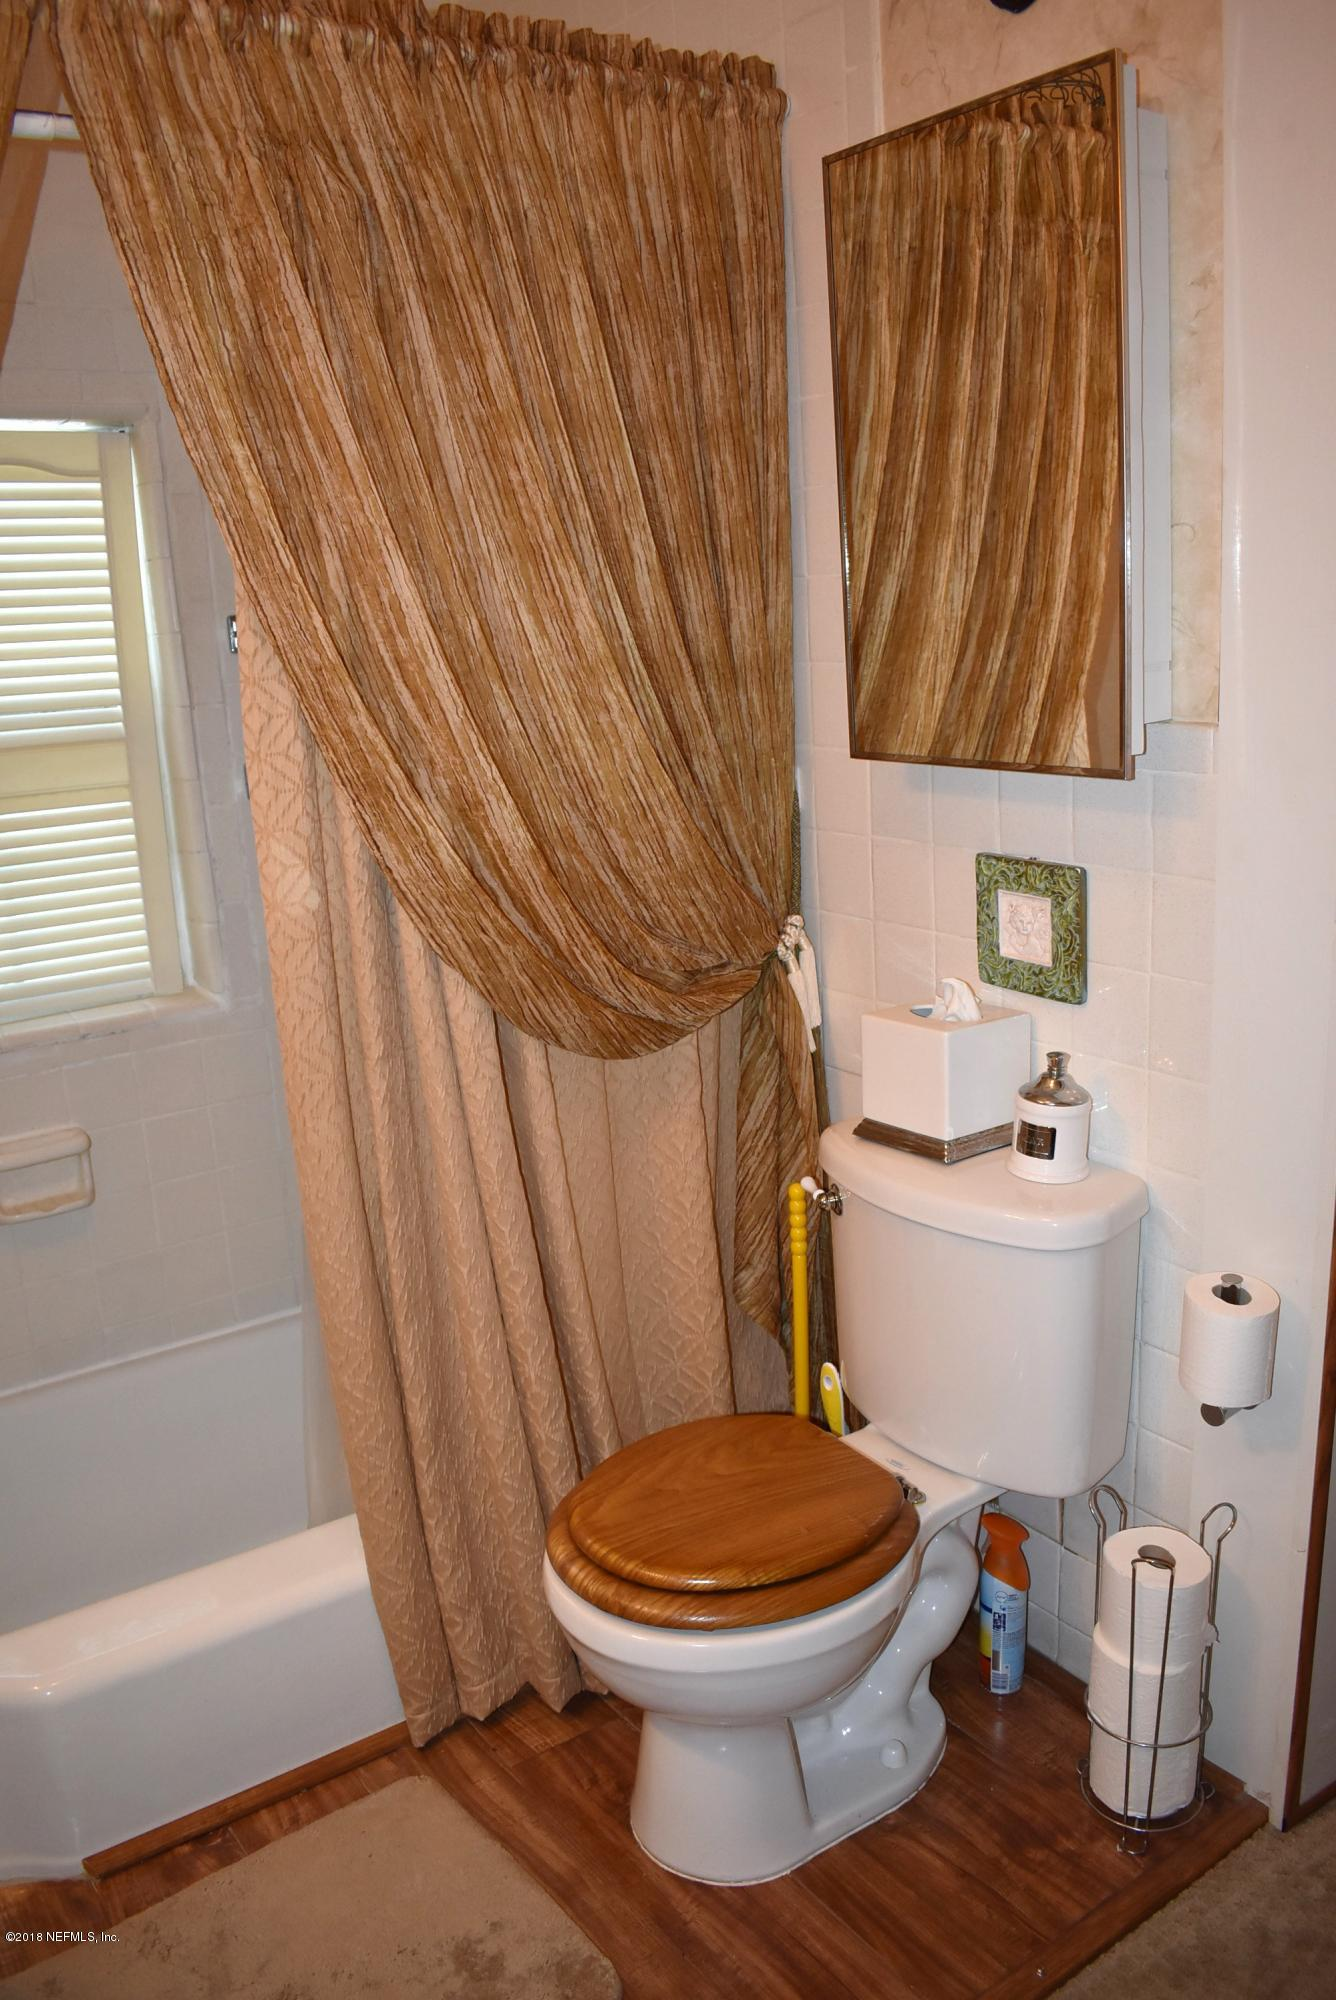 3640 BOONE PARK, JACKSONVILLE, FLORIDA 32205, 1 Bedroom Bedrooms, ,1 BathroomBathrooms,Residential - single family,For sale,BOONE PARK,943360